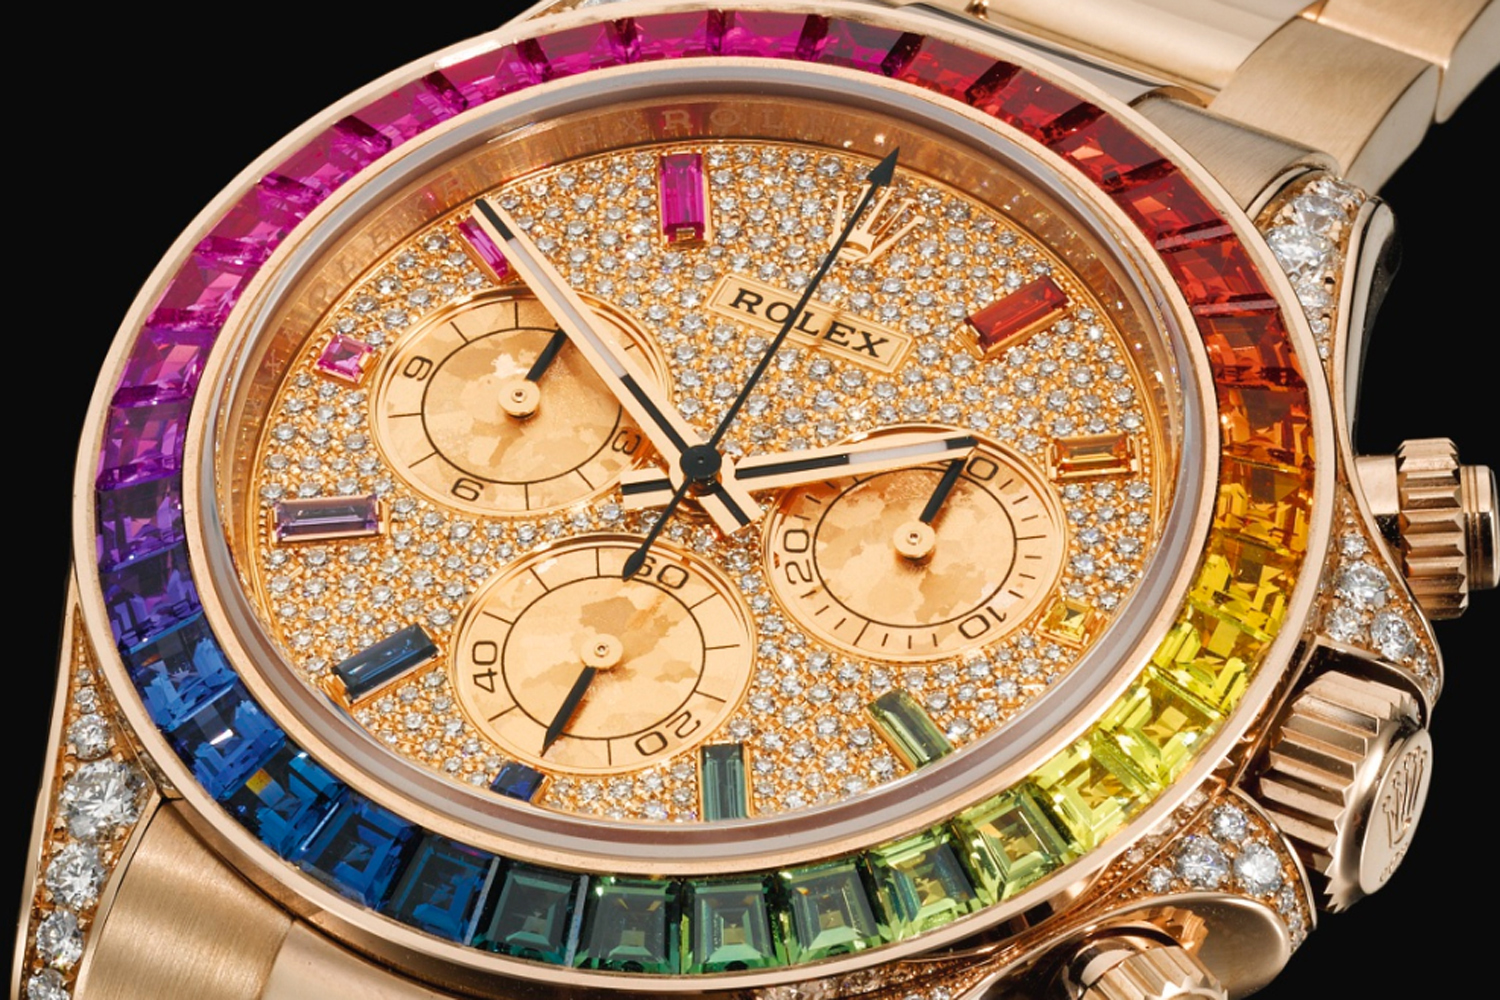 rolex watches images with price